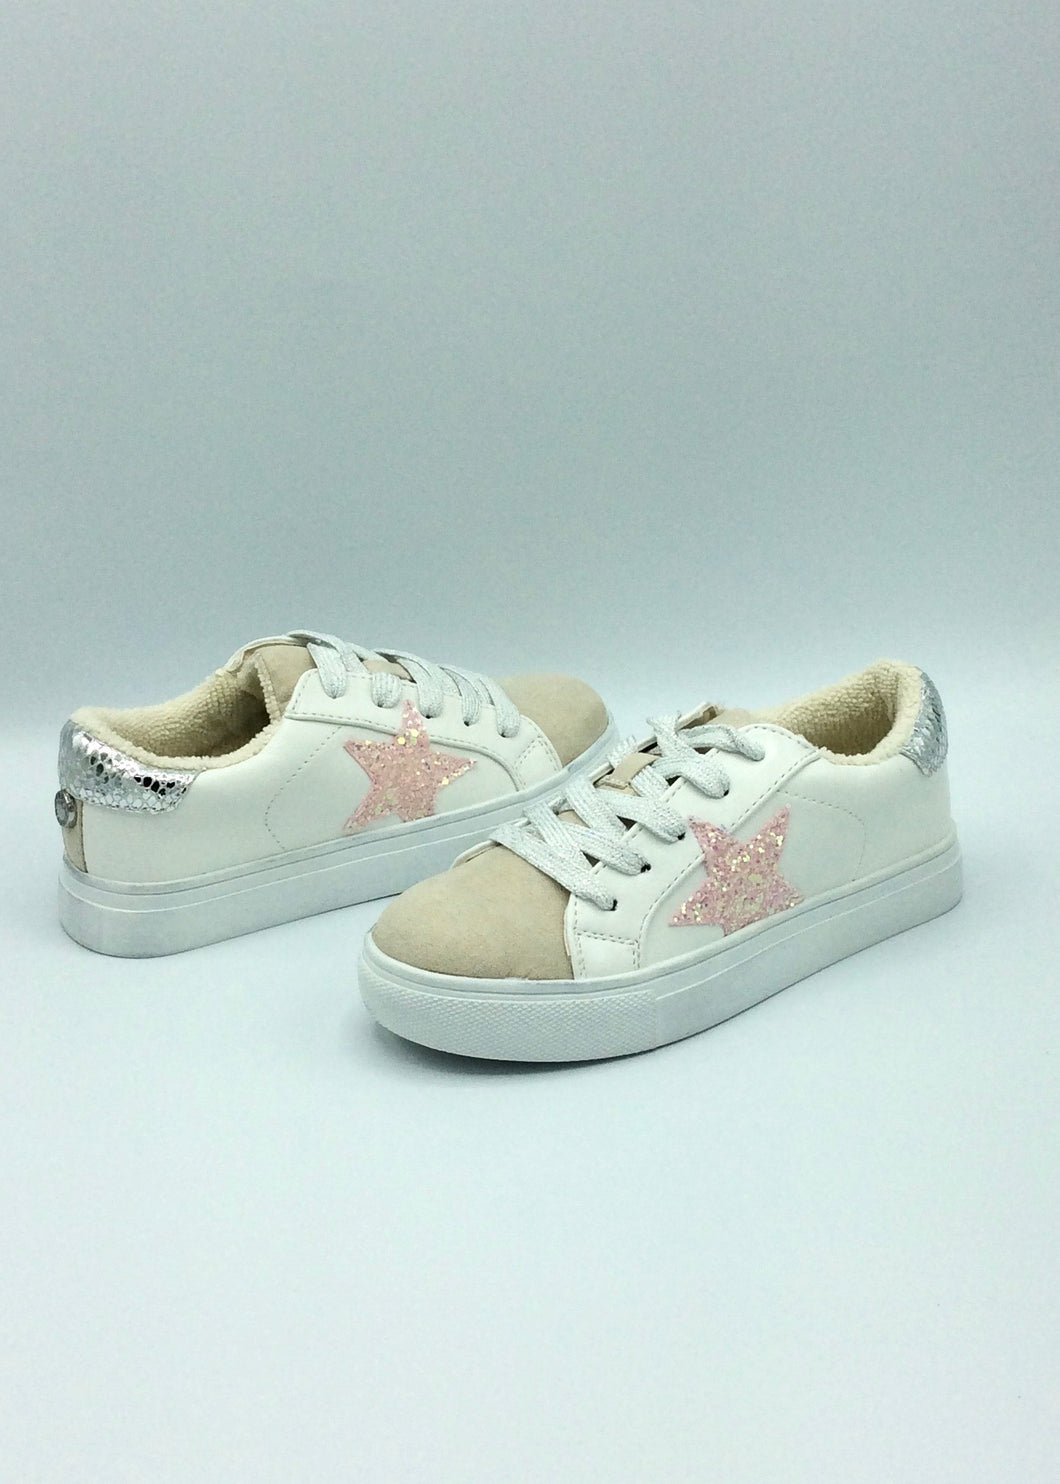 white leather girls sneaker